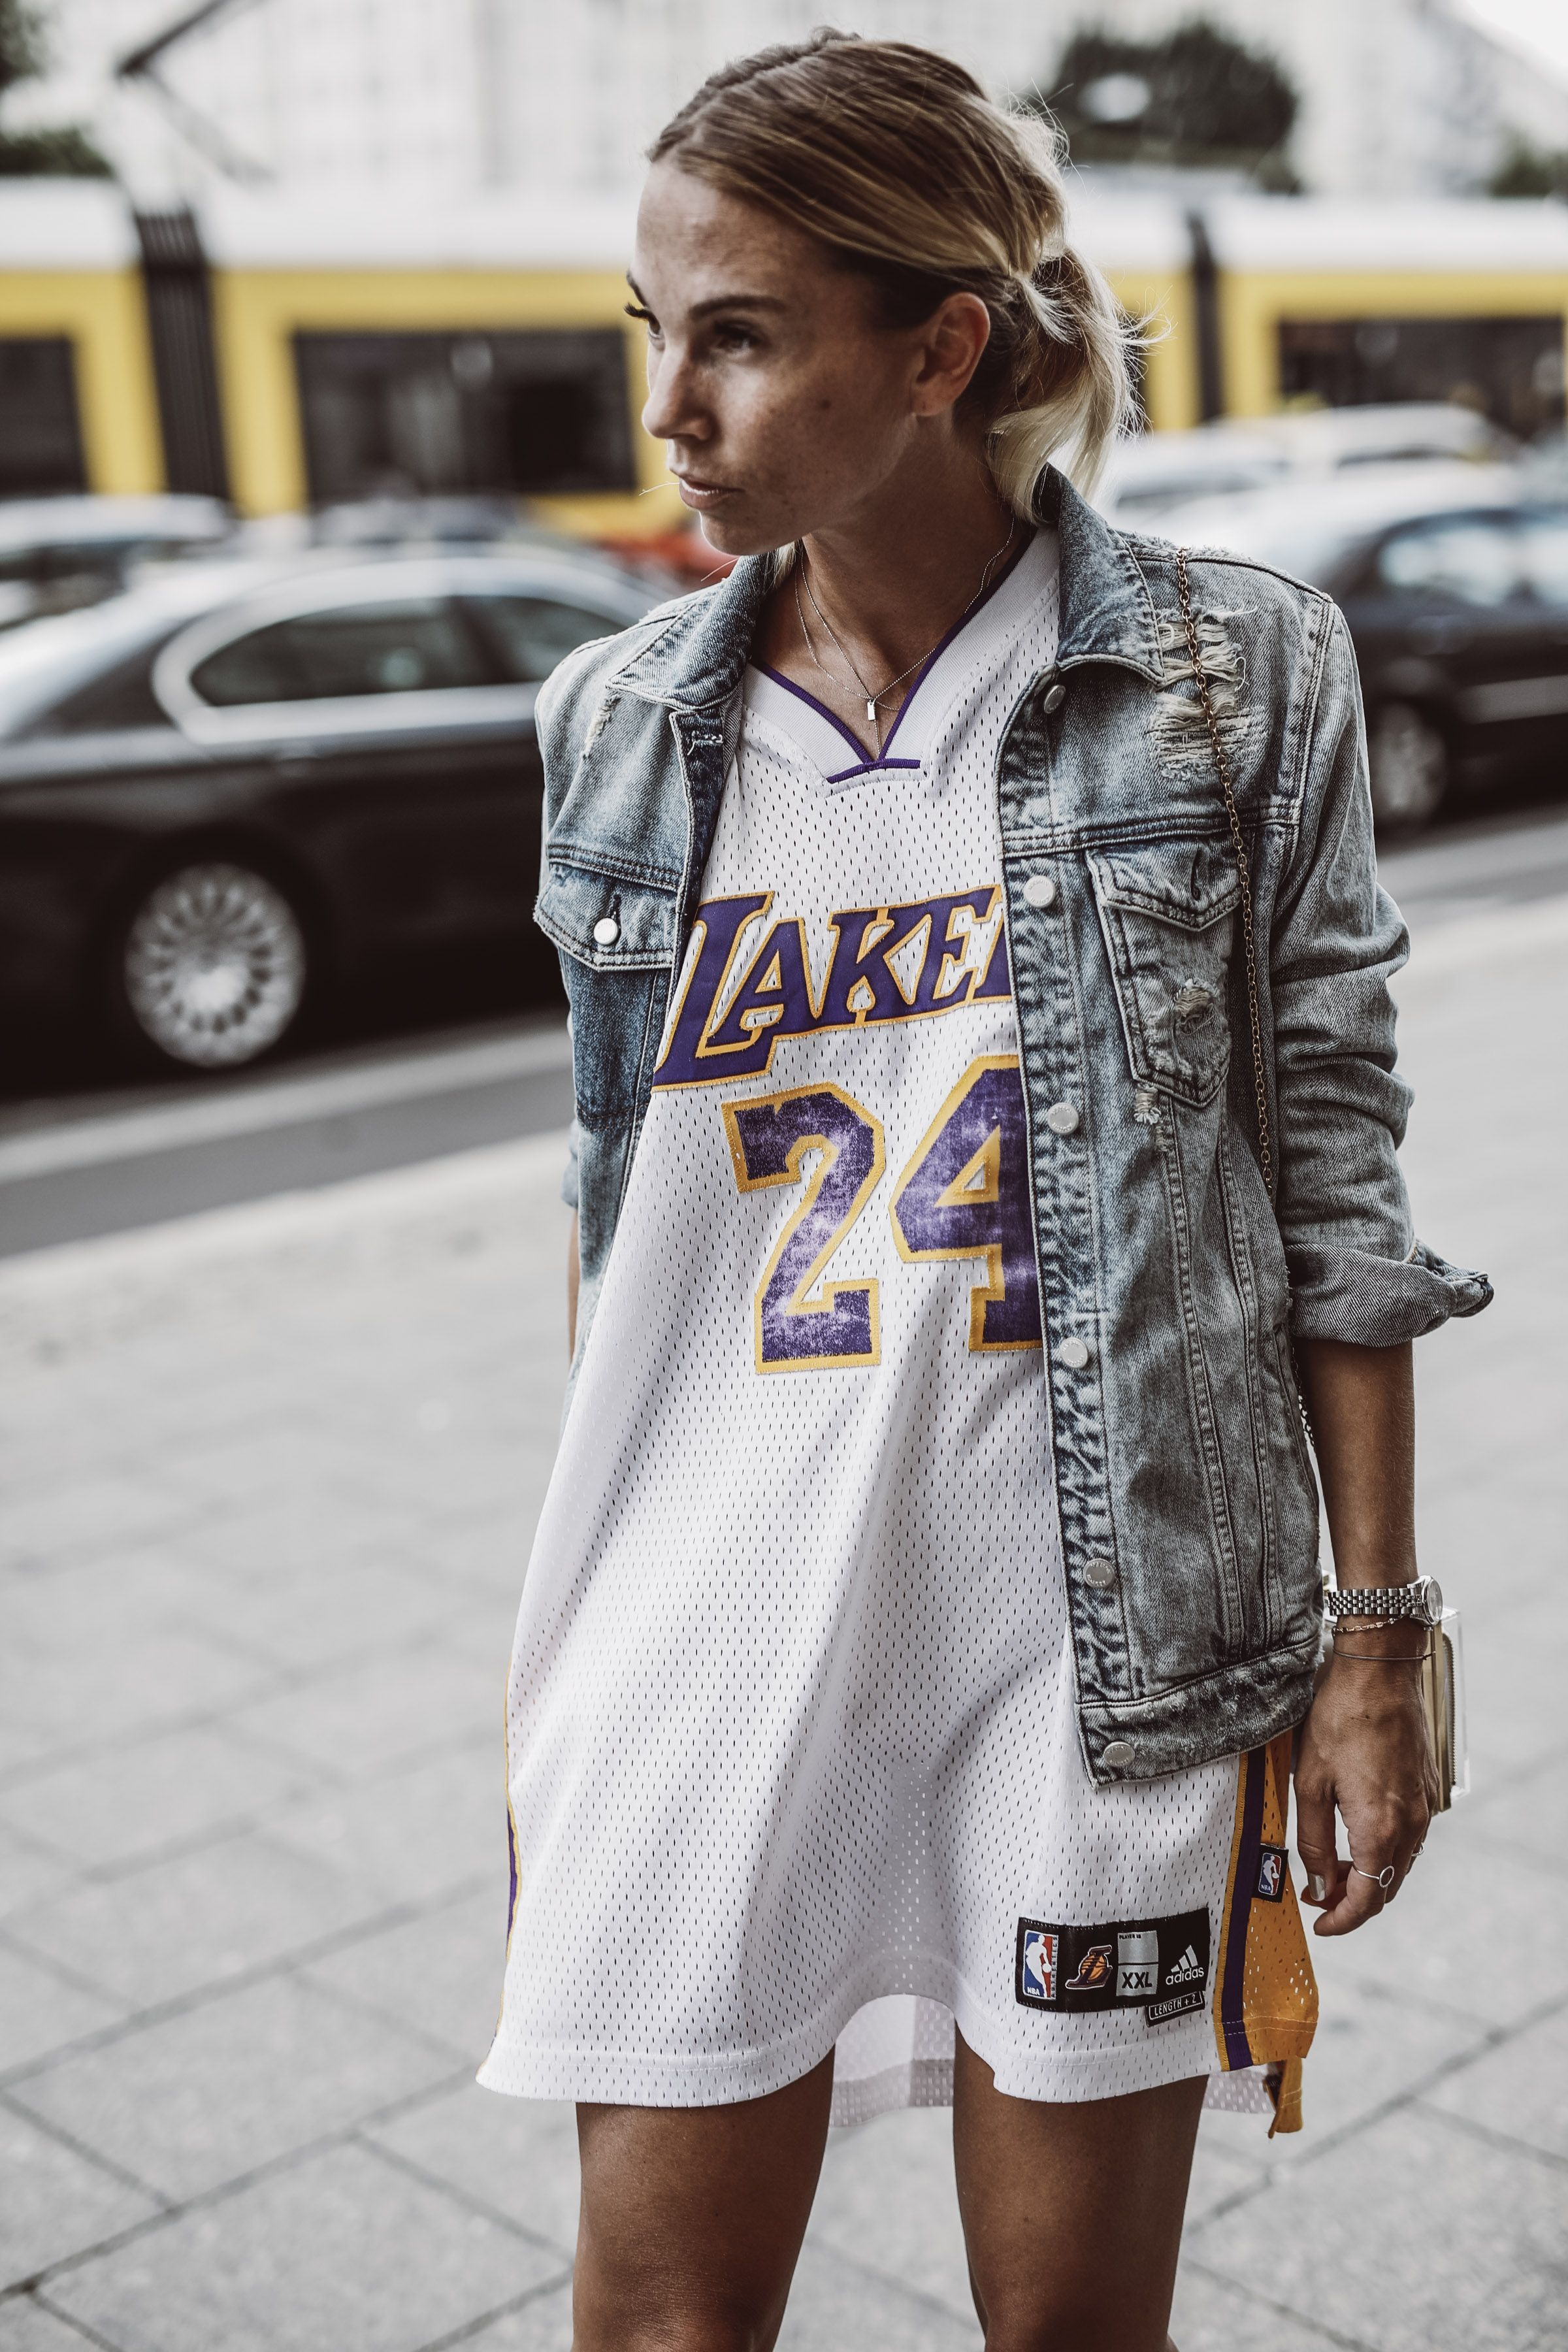 lakers basketball outfit used as dress - casual cool at the ...